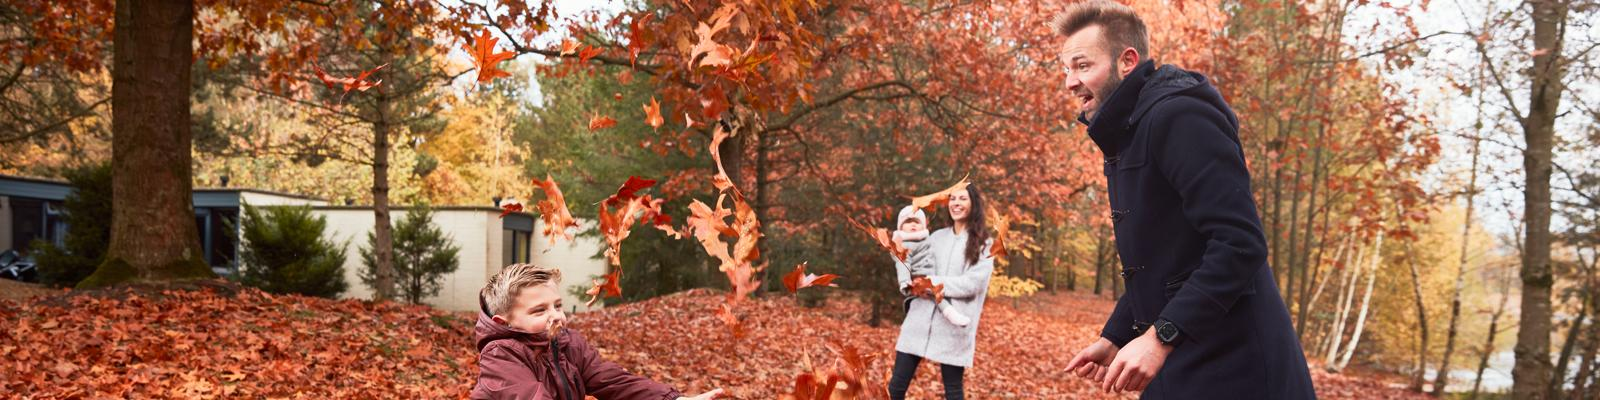 Autumn Holiday at Center Parcs